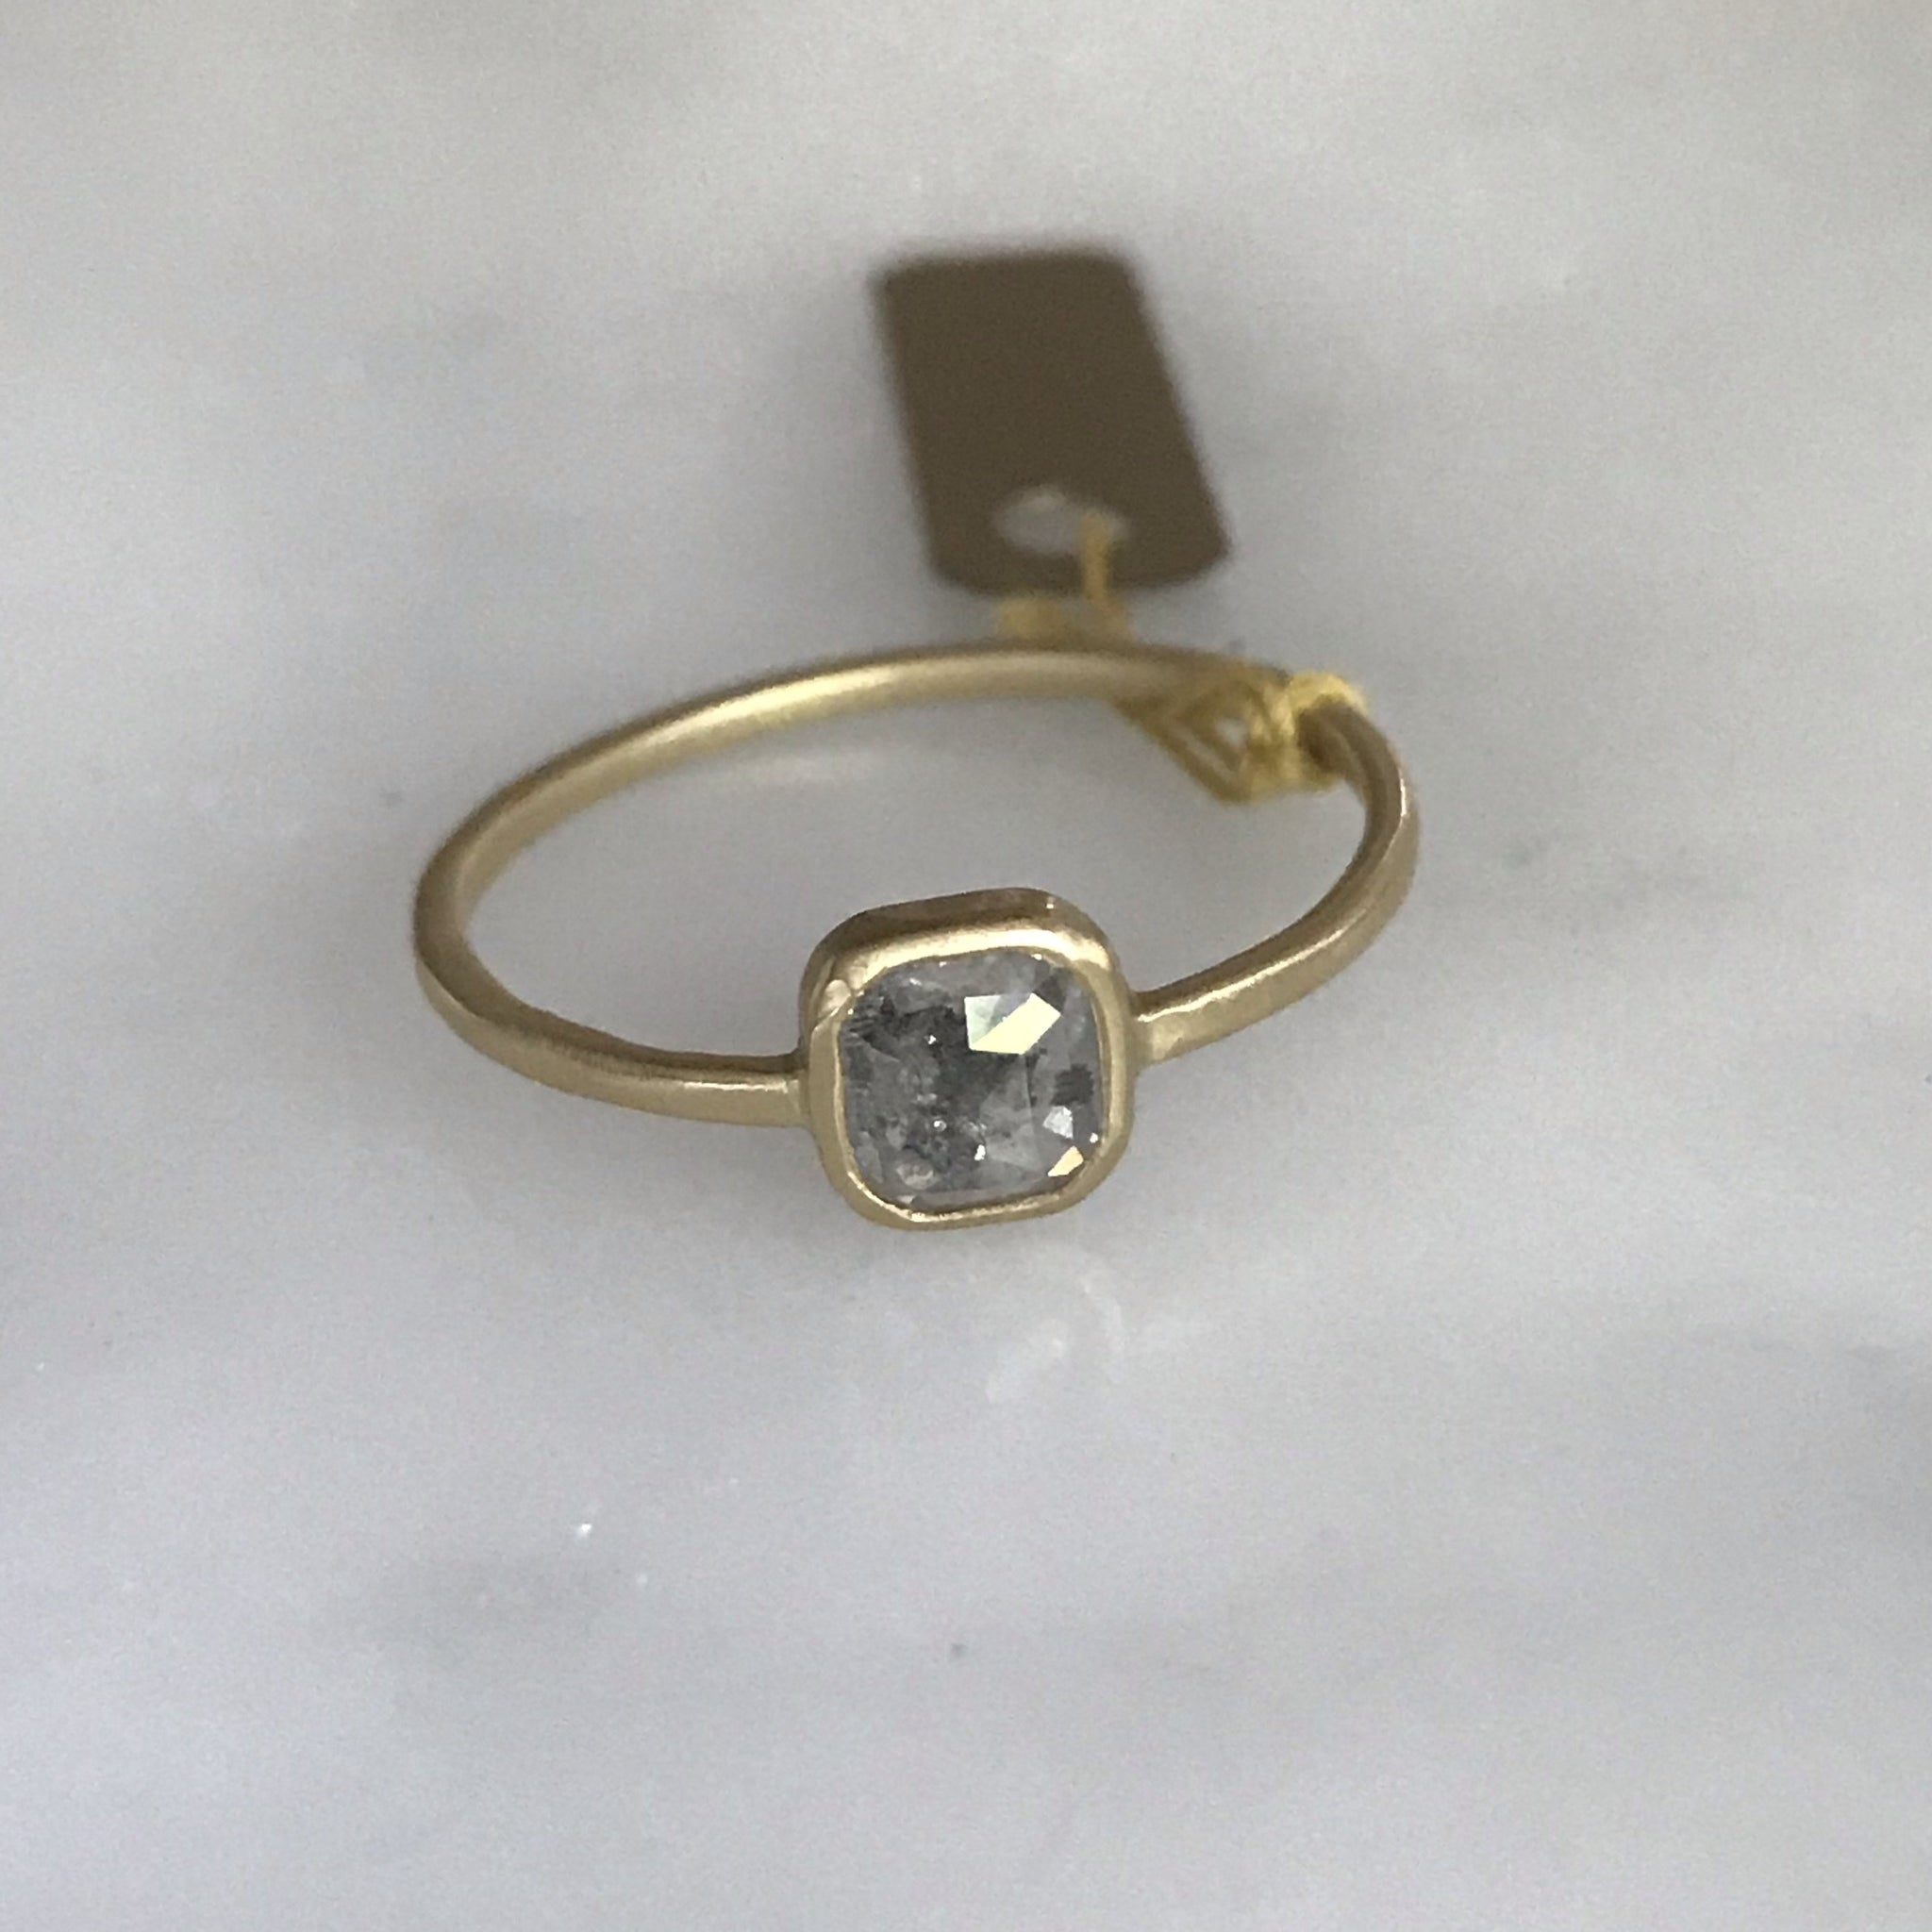 salt + pepper rose cut diamond ring 18k bezel